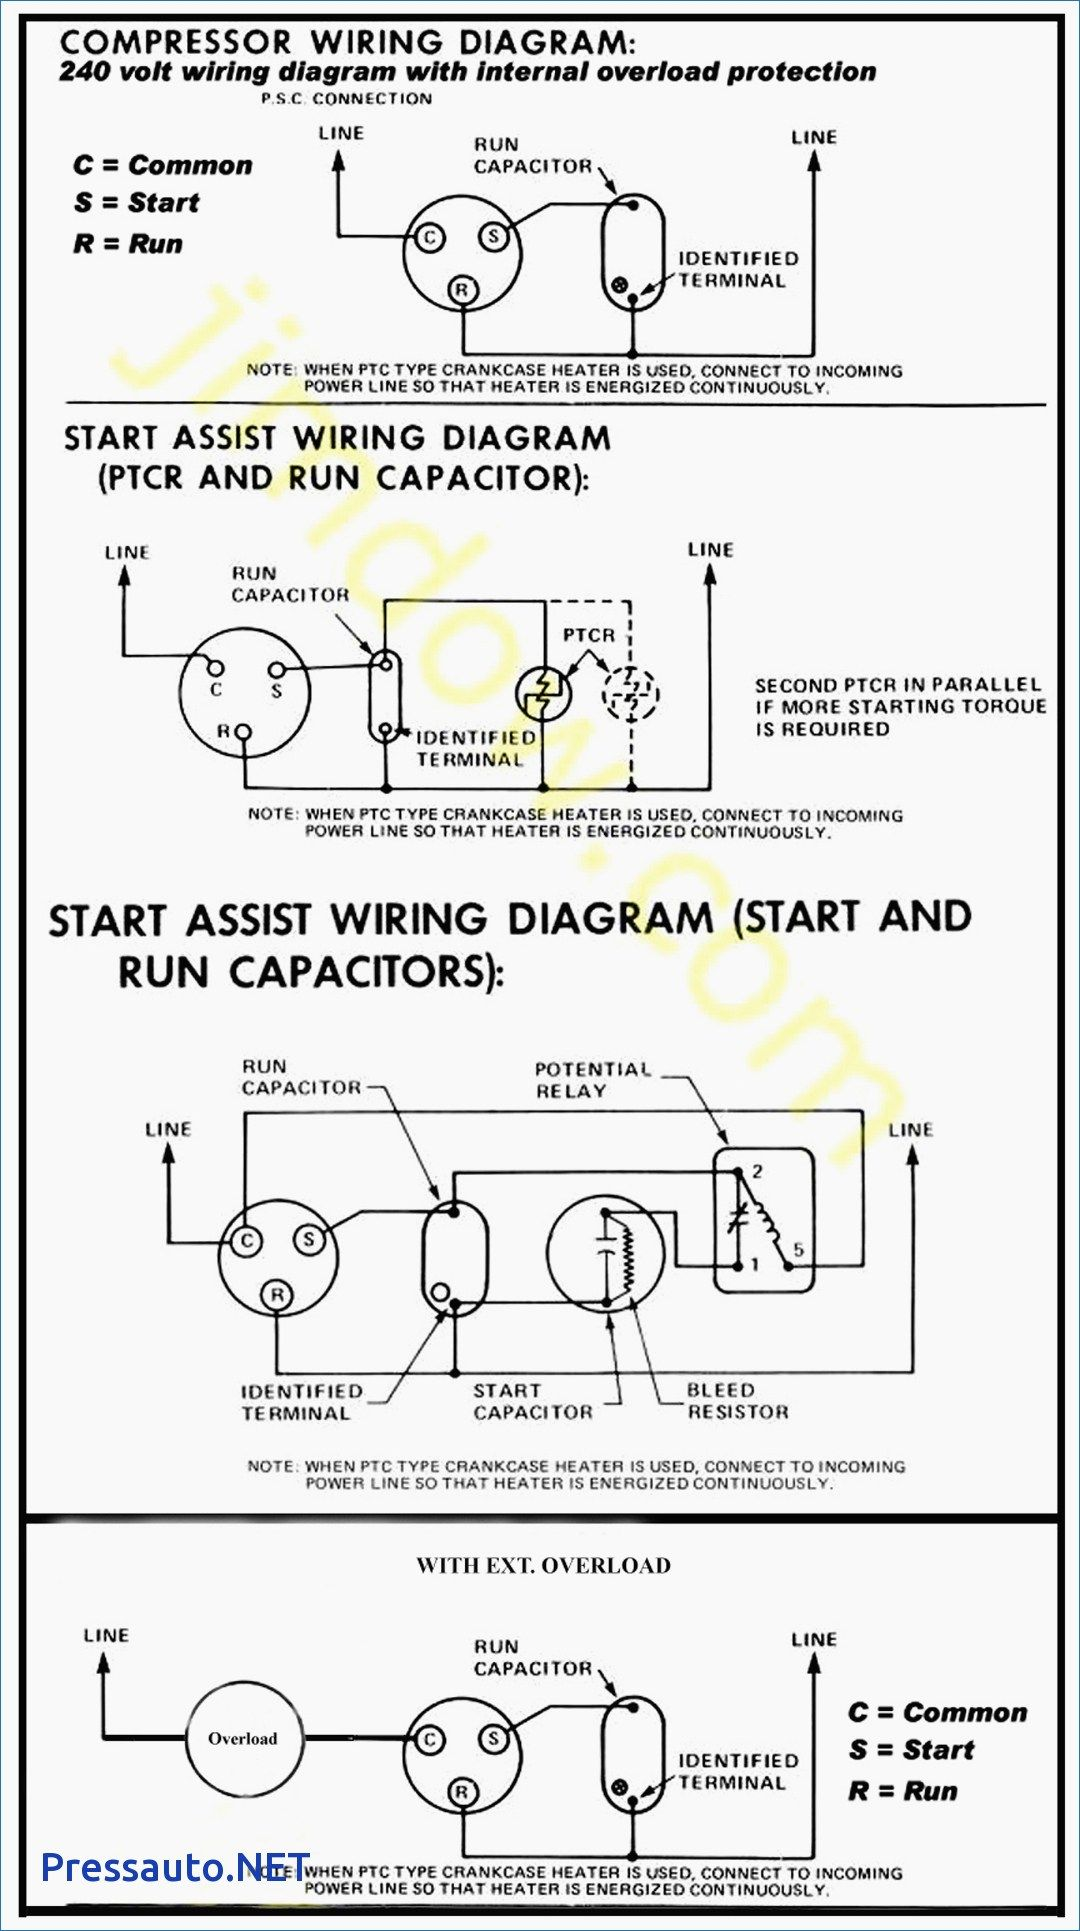 Hard Start Capacitor Wiring Diagram Throughout Starting Refrigeration And Air Conditioning Hvac Air Conditioning Air Conditioner Compressor